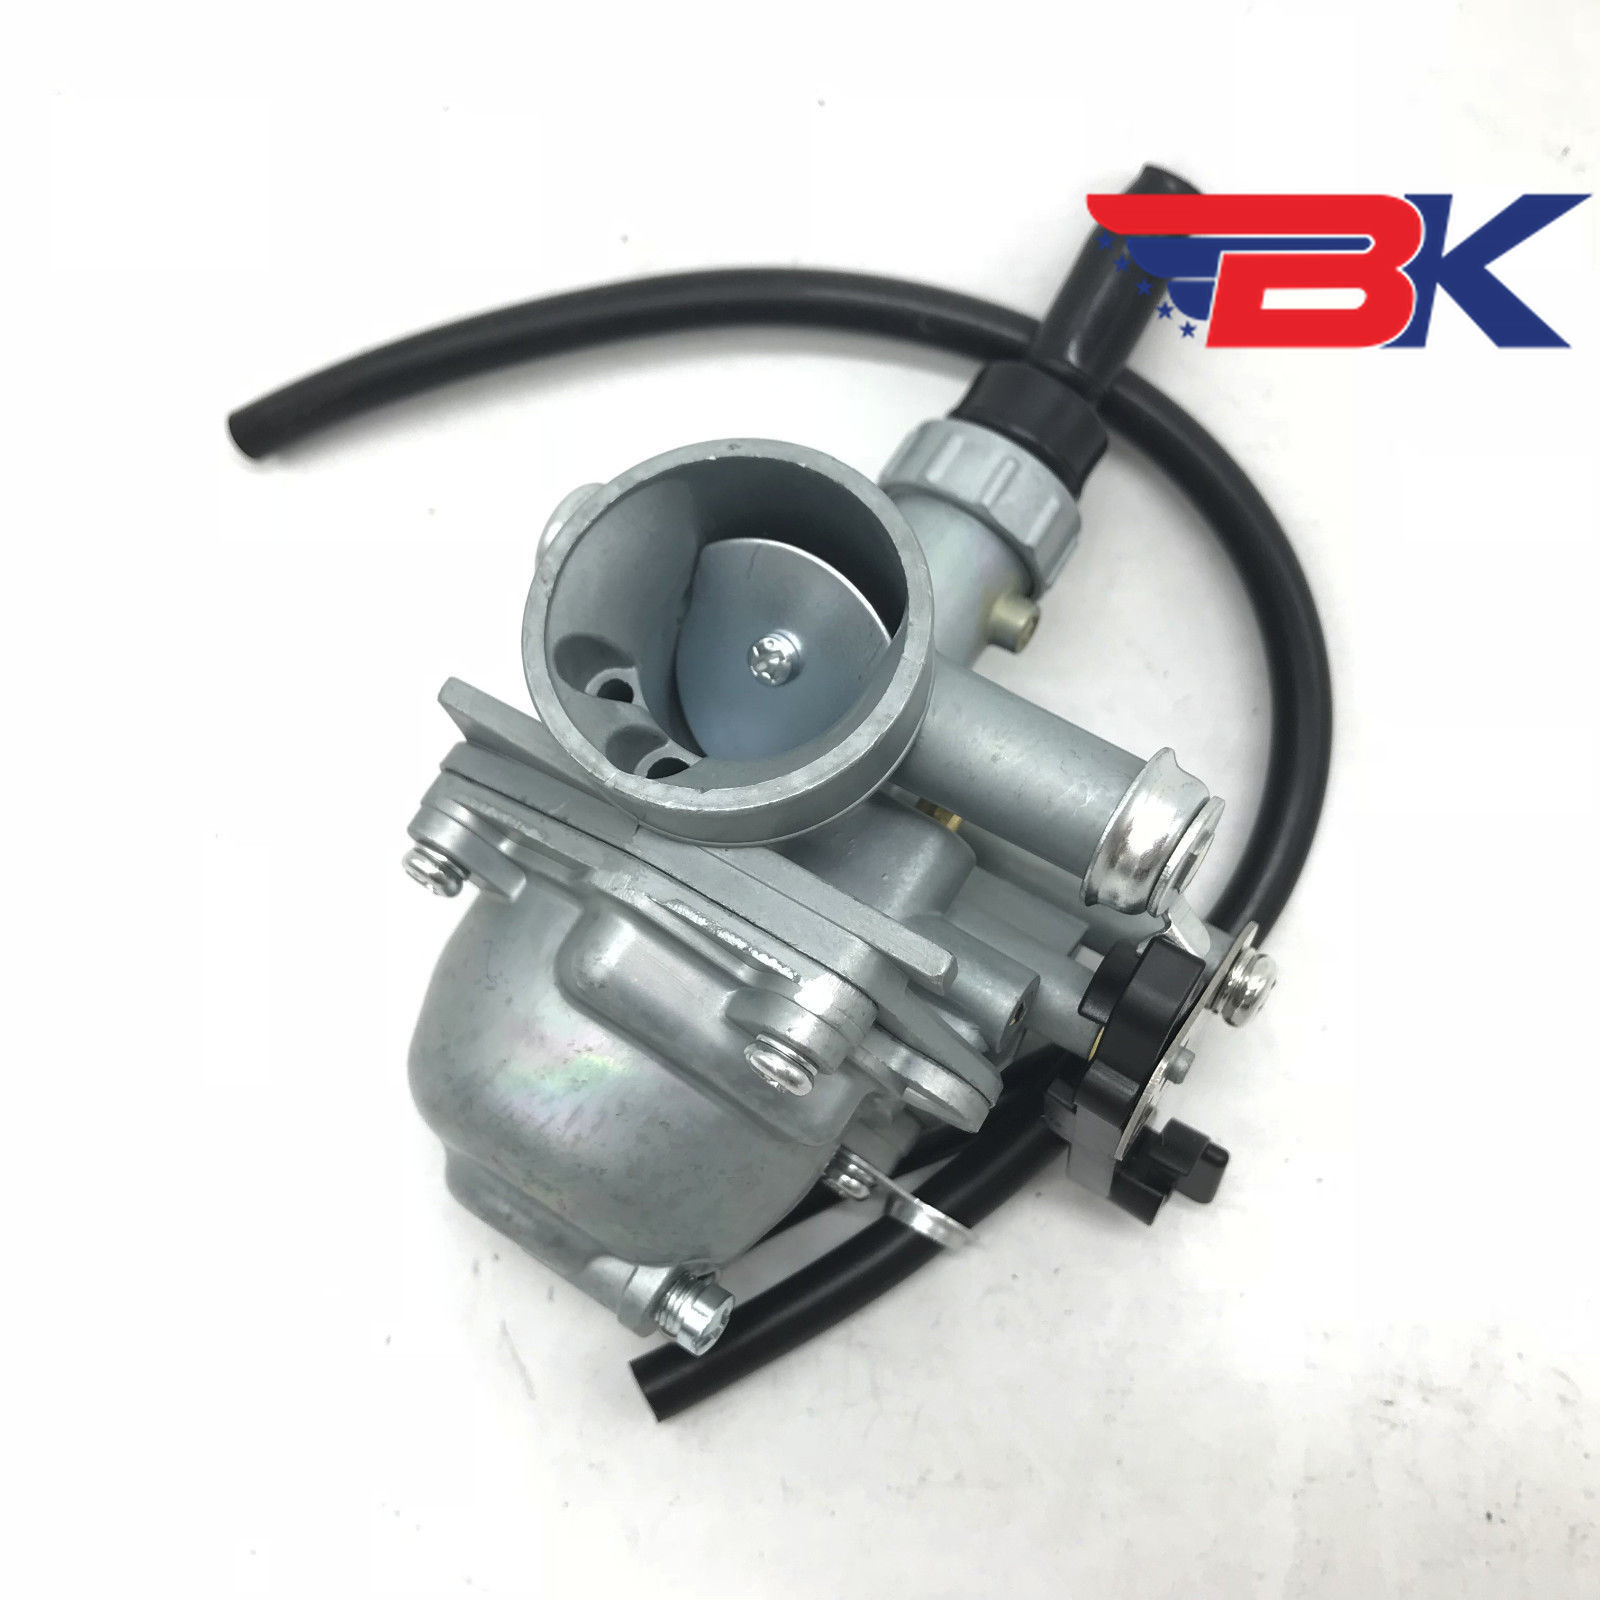 Reliable Vm16 Mikuni Carby 50cc 70cc 110 125cc Pit Dirt Bike Atv Scooter 19mm Z50 Dax Carb Carburetor Atv Parts & Accessories